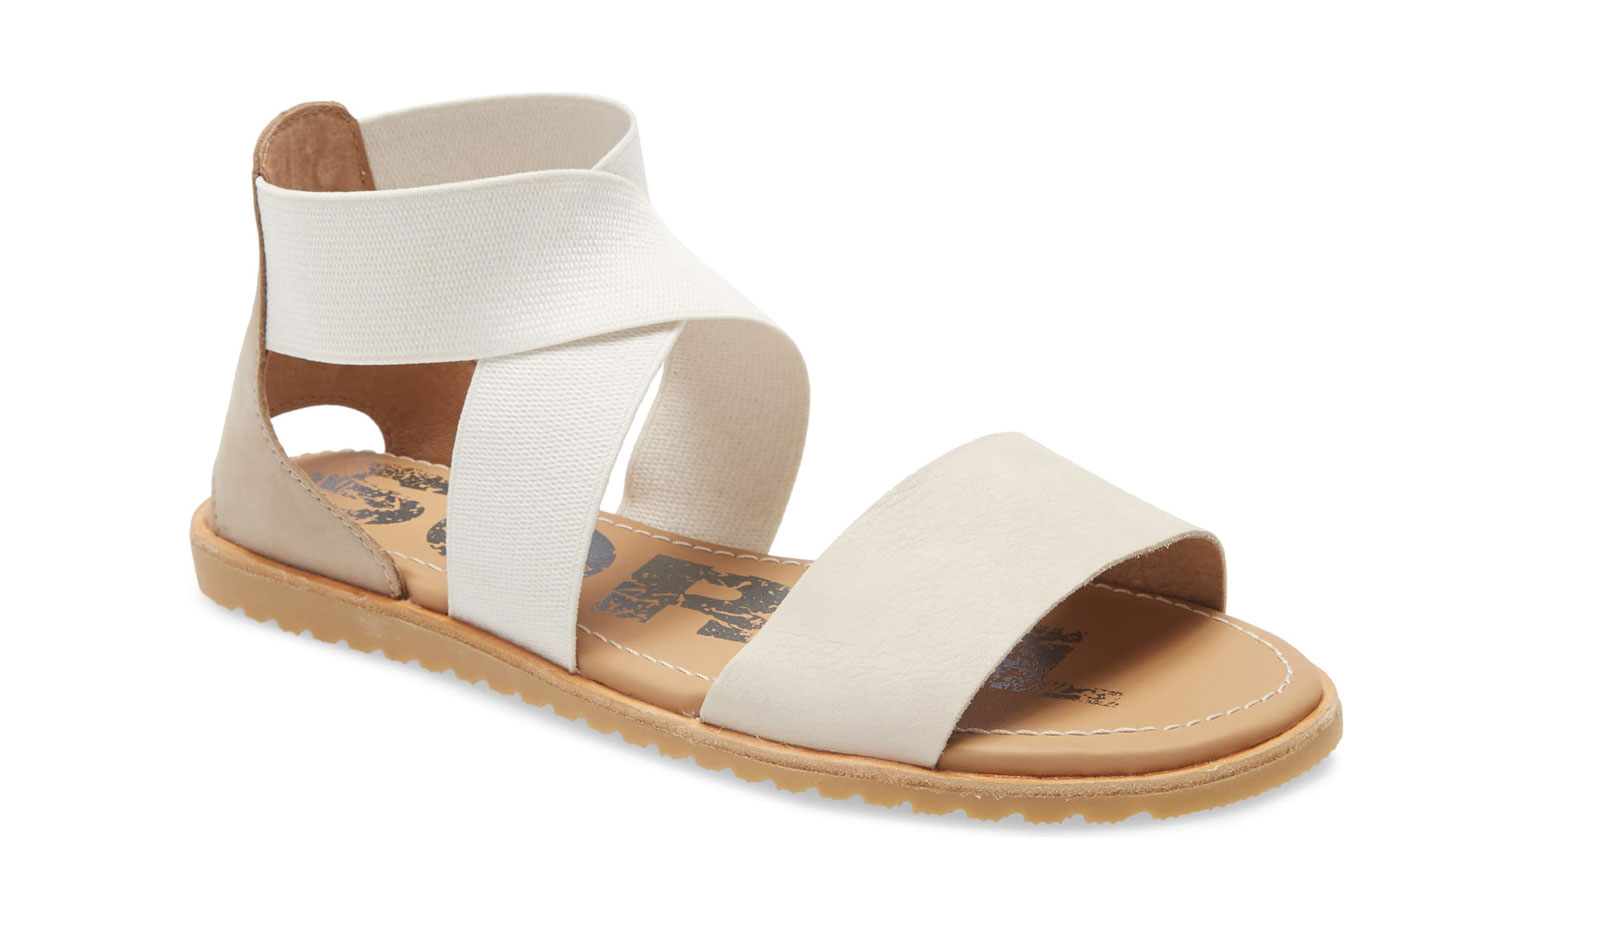 Cream and tan strappy flat sandals